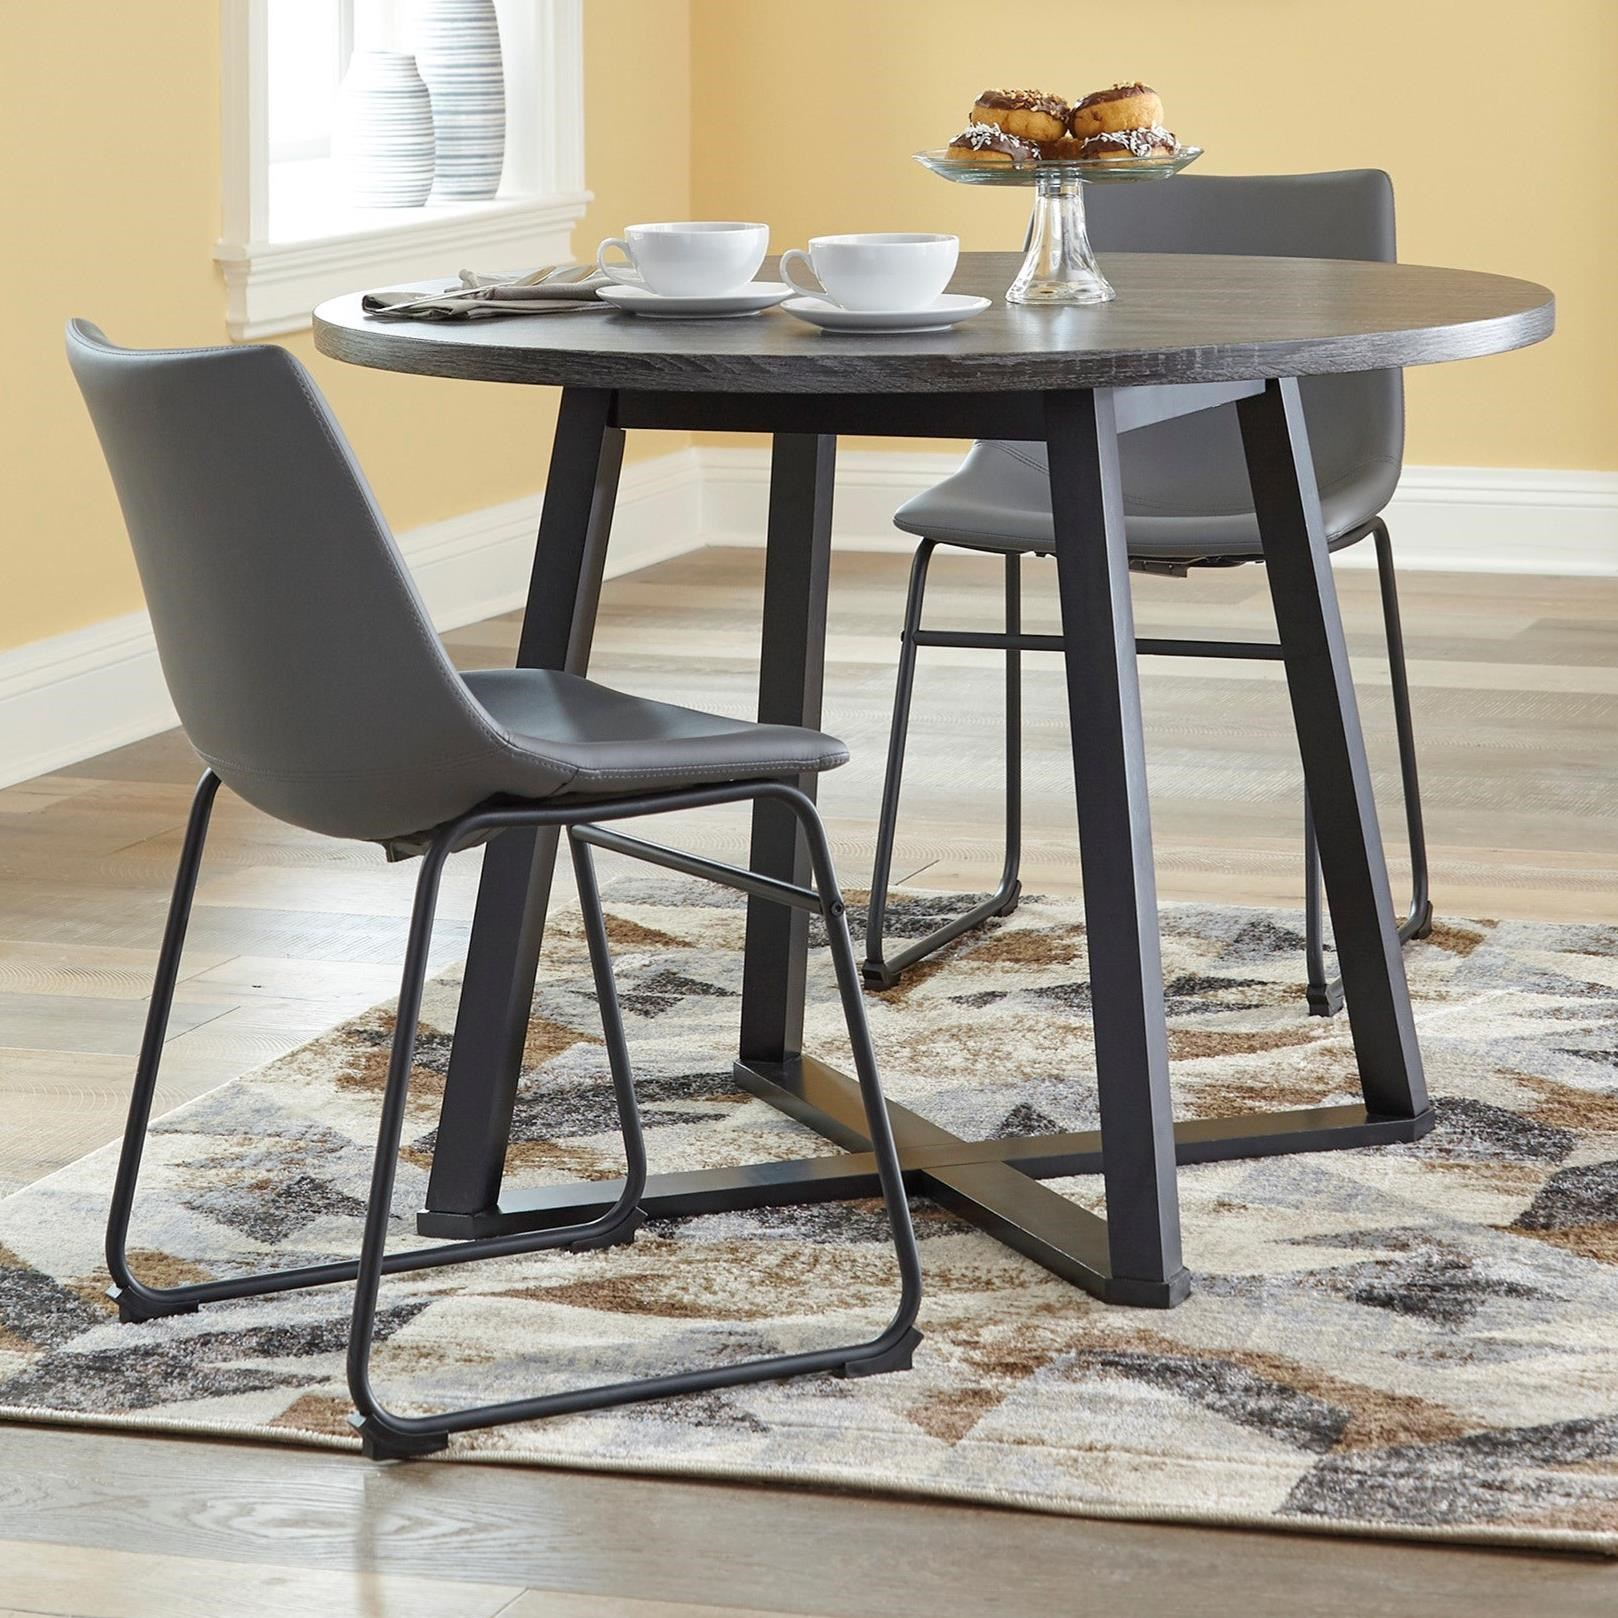 Centiar 3-Piece Round Dining Table Set by Signature Design by Ashley at Standard Furniture